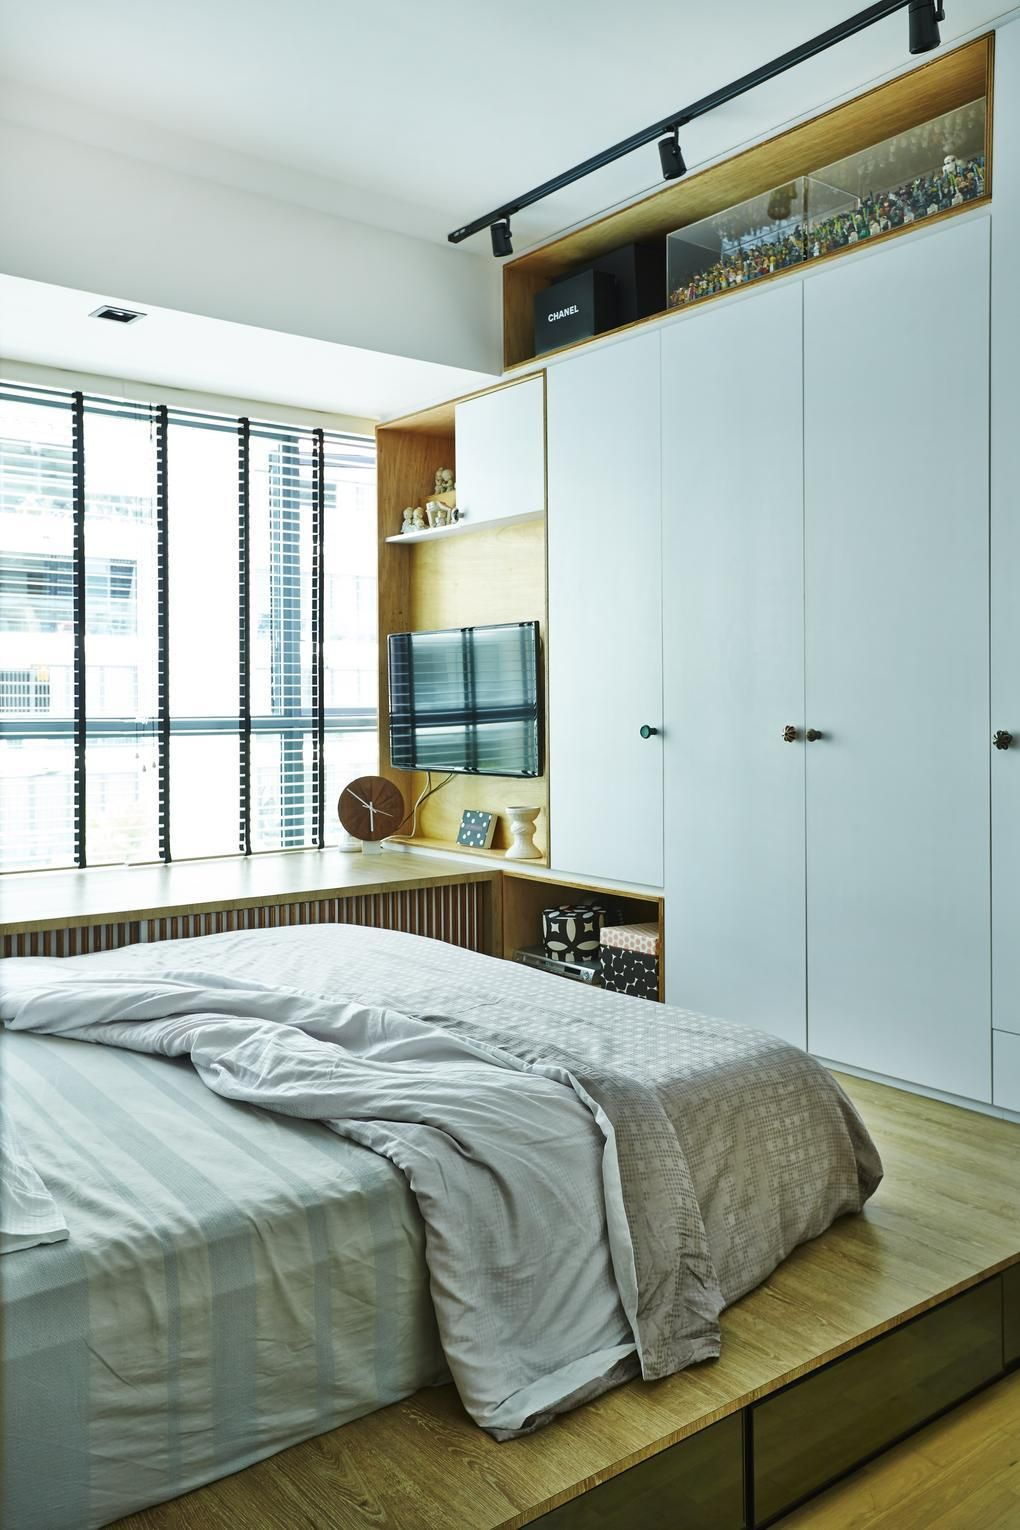 Bedroom Design Ideas 10 Trendy Modern Interiors Seen In 25 Tips And Photos For Decorating A Mrn Mas Bedroom Design Bedroom Design Trends Master Bedrooms Decor